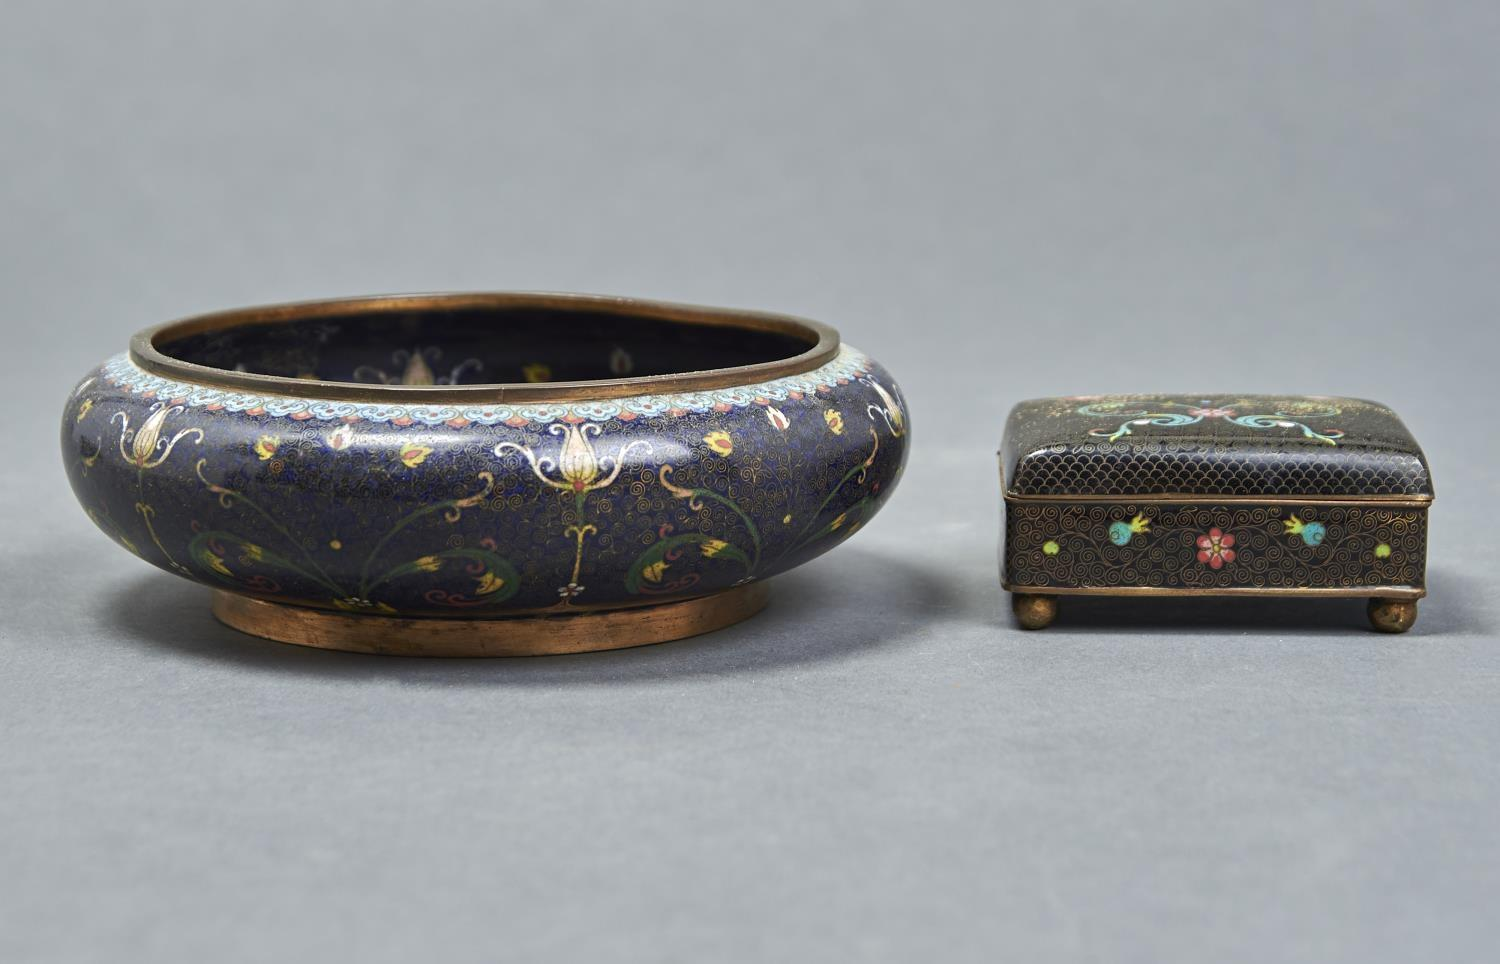 A JAPANESE CLOISONNE ENAMEL BOX, 20TH C, WITH BLACK GROUND, 95MM L AND A CHINESE BLUE GROUND